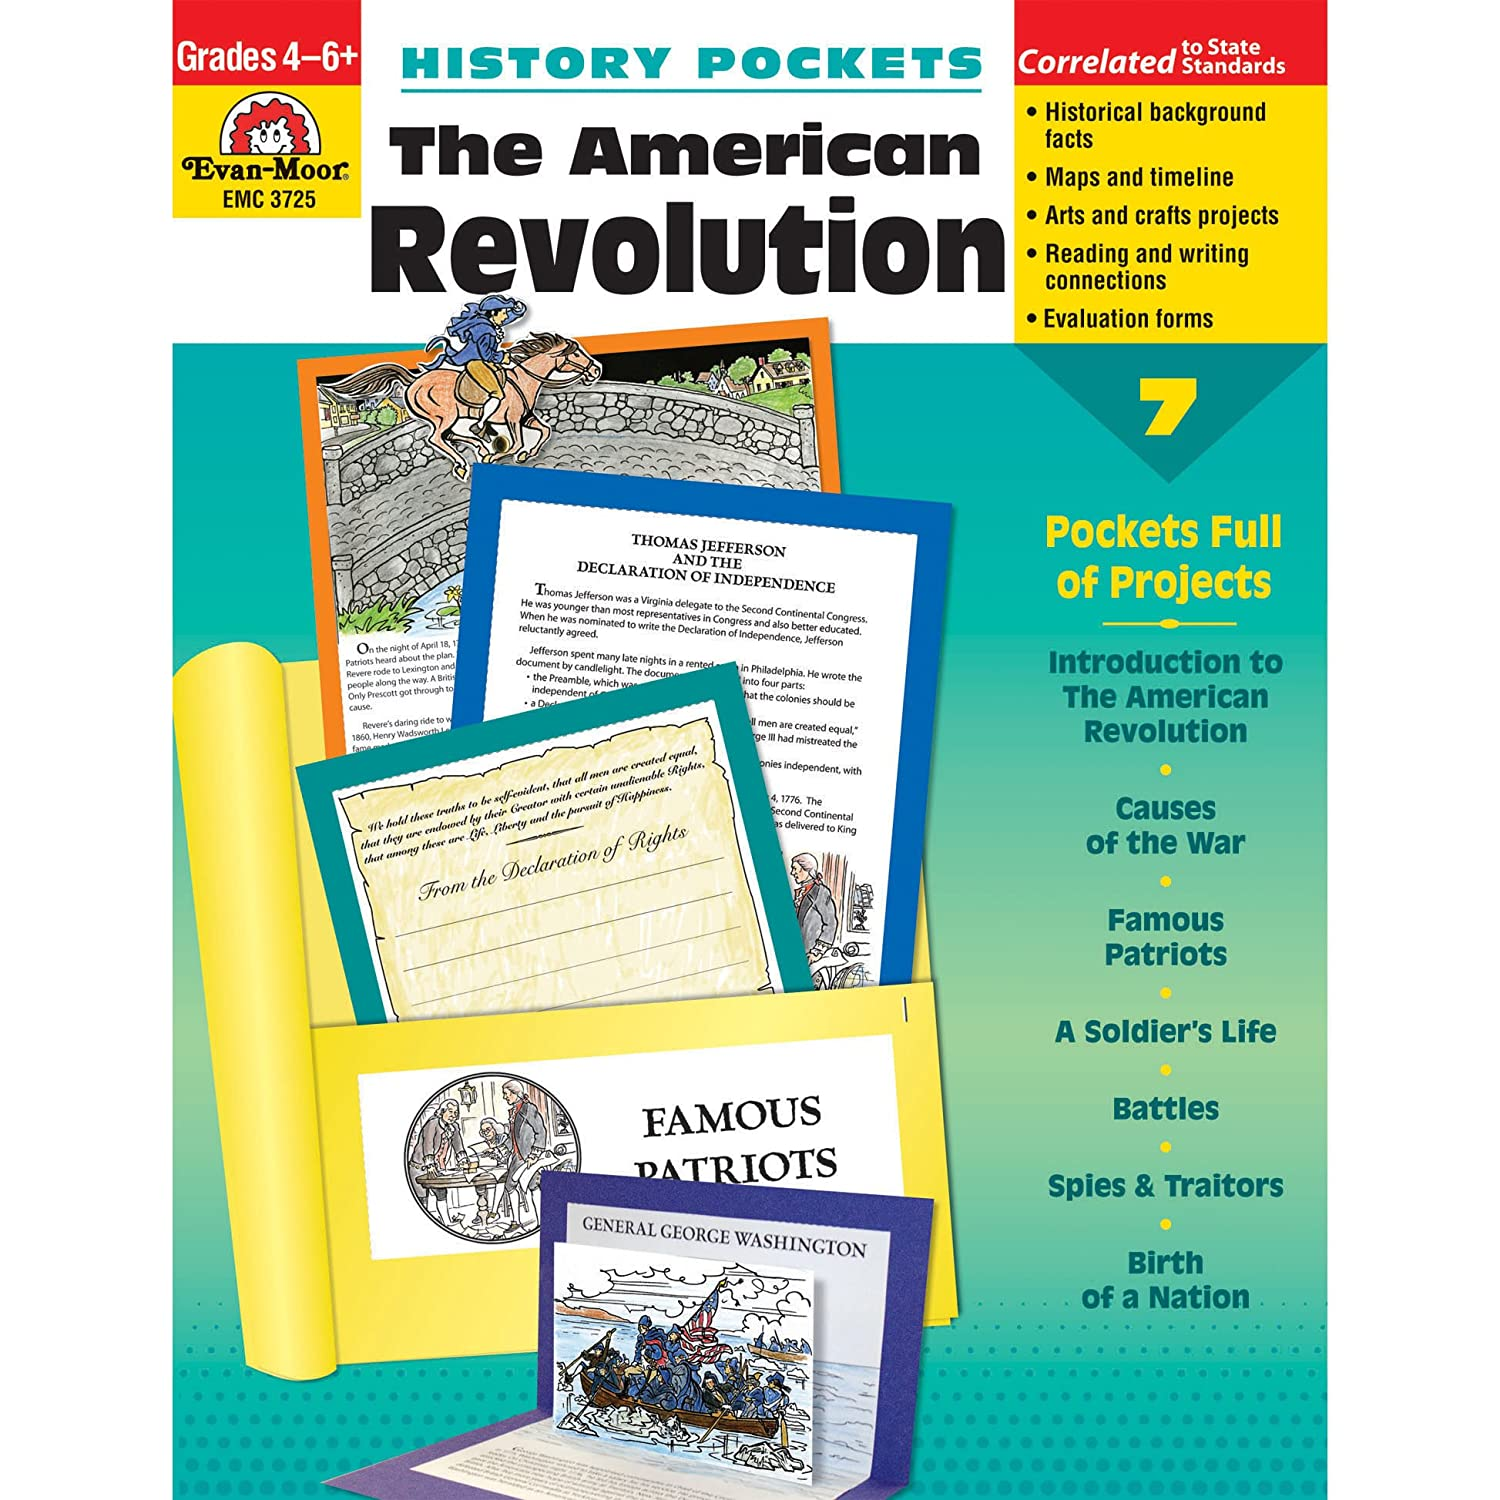 Amazon history pockets the american revolution 0023472037251 amazon history pockets the american revolution 0023472037251 evan moor evan moor educational publishers books fandeluxe